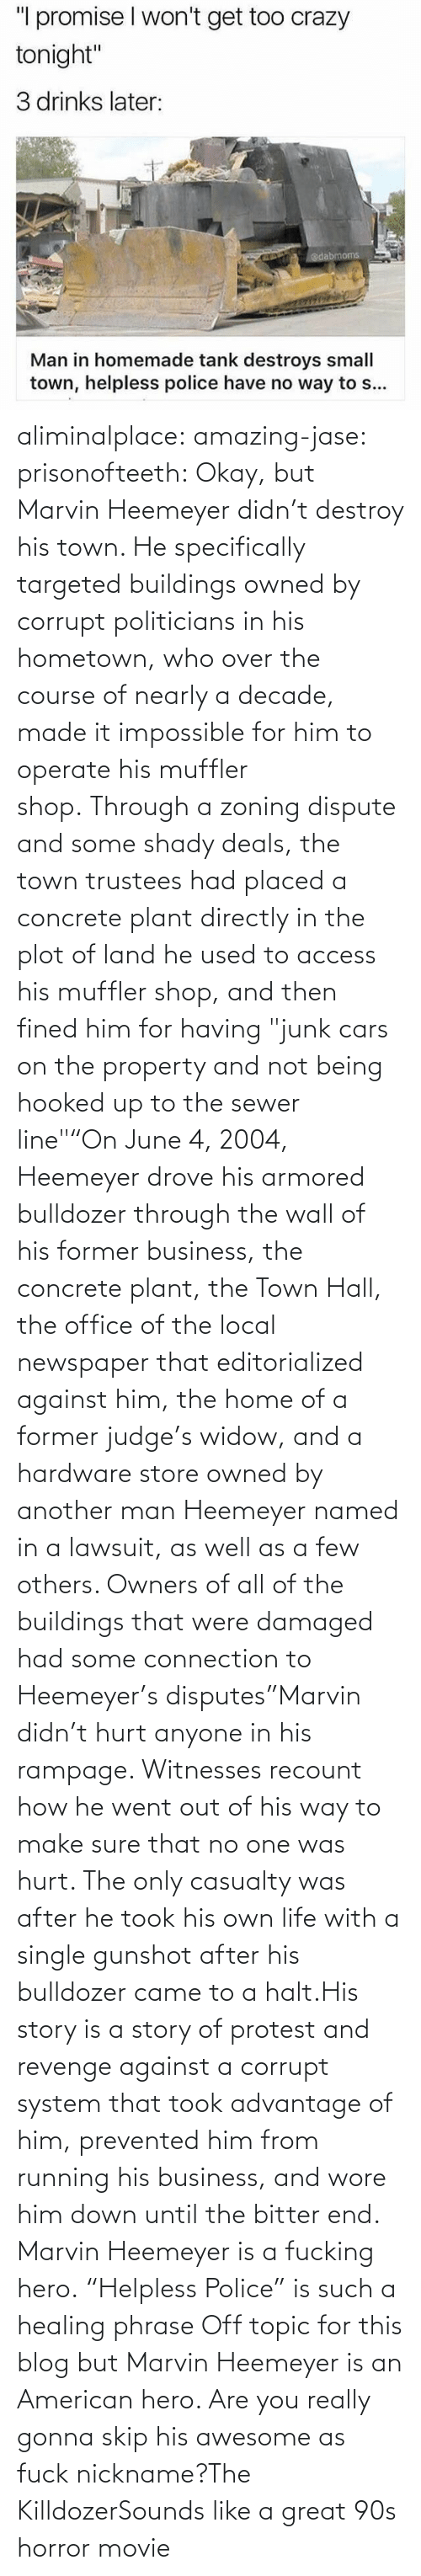 "Topic: aliminalplace: amazing-jase:  prisonofteeth: Okay, but Marvin Heemeyer didn't destroy his town. He specifically targeted buildings owned by corrupt politicians in his hometown, who over the course of nearly a decade, made it impossible for him to operate his muffler shop. Through a zoning dispute and some shady deals, the town trustees had placed a concrete plant directly in the plot of land he used to access his muffler shop, and then fined him for having ""junk cars on the property and not being hooked up to the sewer line""""On June 4, 2004, Heemeyer drove his armored bulldozer through the wall of his former business, the concrete plant, the Town Hall, the office of the local newspaper that editorialized against him, the home of a former judge's widow, and a hardware store owned by another man Heemeyer named in a lawsuit, as well as a few others. Owners of all of the buildings that were damaged had some connection to Heemeyer's disputes""Marvin didn't hurt anyone in his rampage. Witnesses recount how he went out of his way to make sure that no one was hurt. The only casualty was after he took his own life with a single gunshot after his bulldozer came to a halt.His story is a story of protest and revenge against a corrupt system that took advantage of him, prevented him from running his business, and wore him down until the bitter end. Marvin Heemeyer is a fucking hero. ""Helpless Police"" is such a healing phrase    Off topic for this blog but Marvin Heemeyer is an American hero.     Are you really gonna skip his awesome as fuck nickname?The KilldozerSounds like a great 90s horror movie"